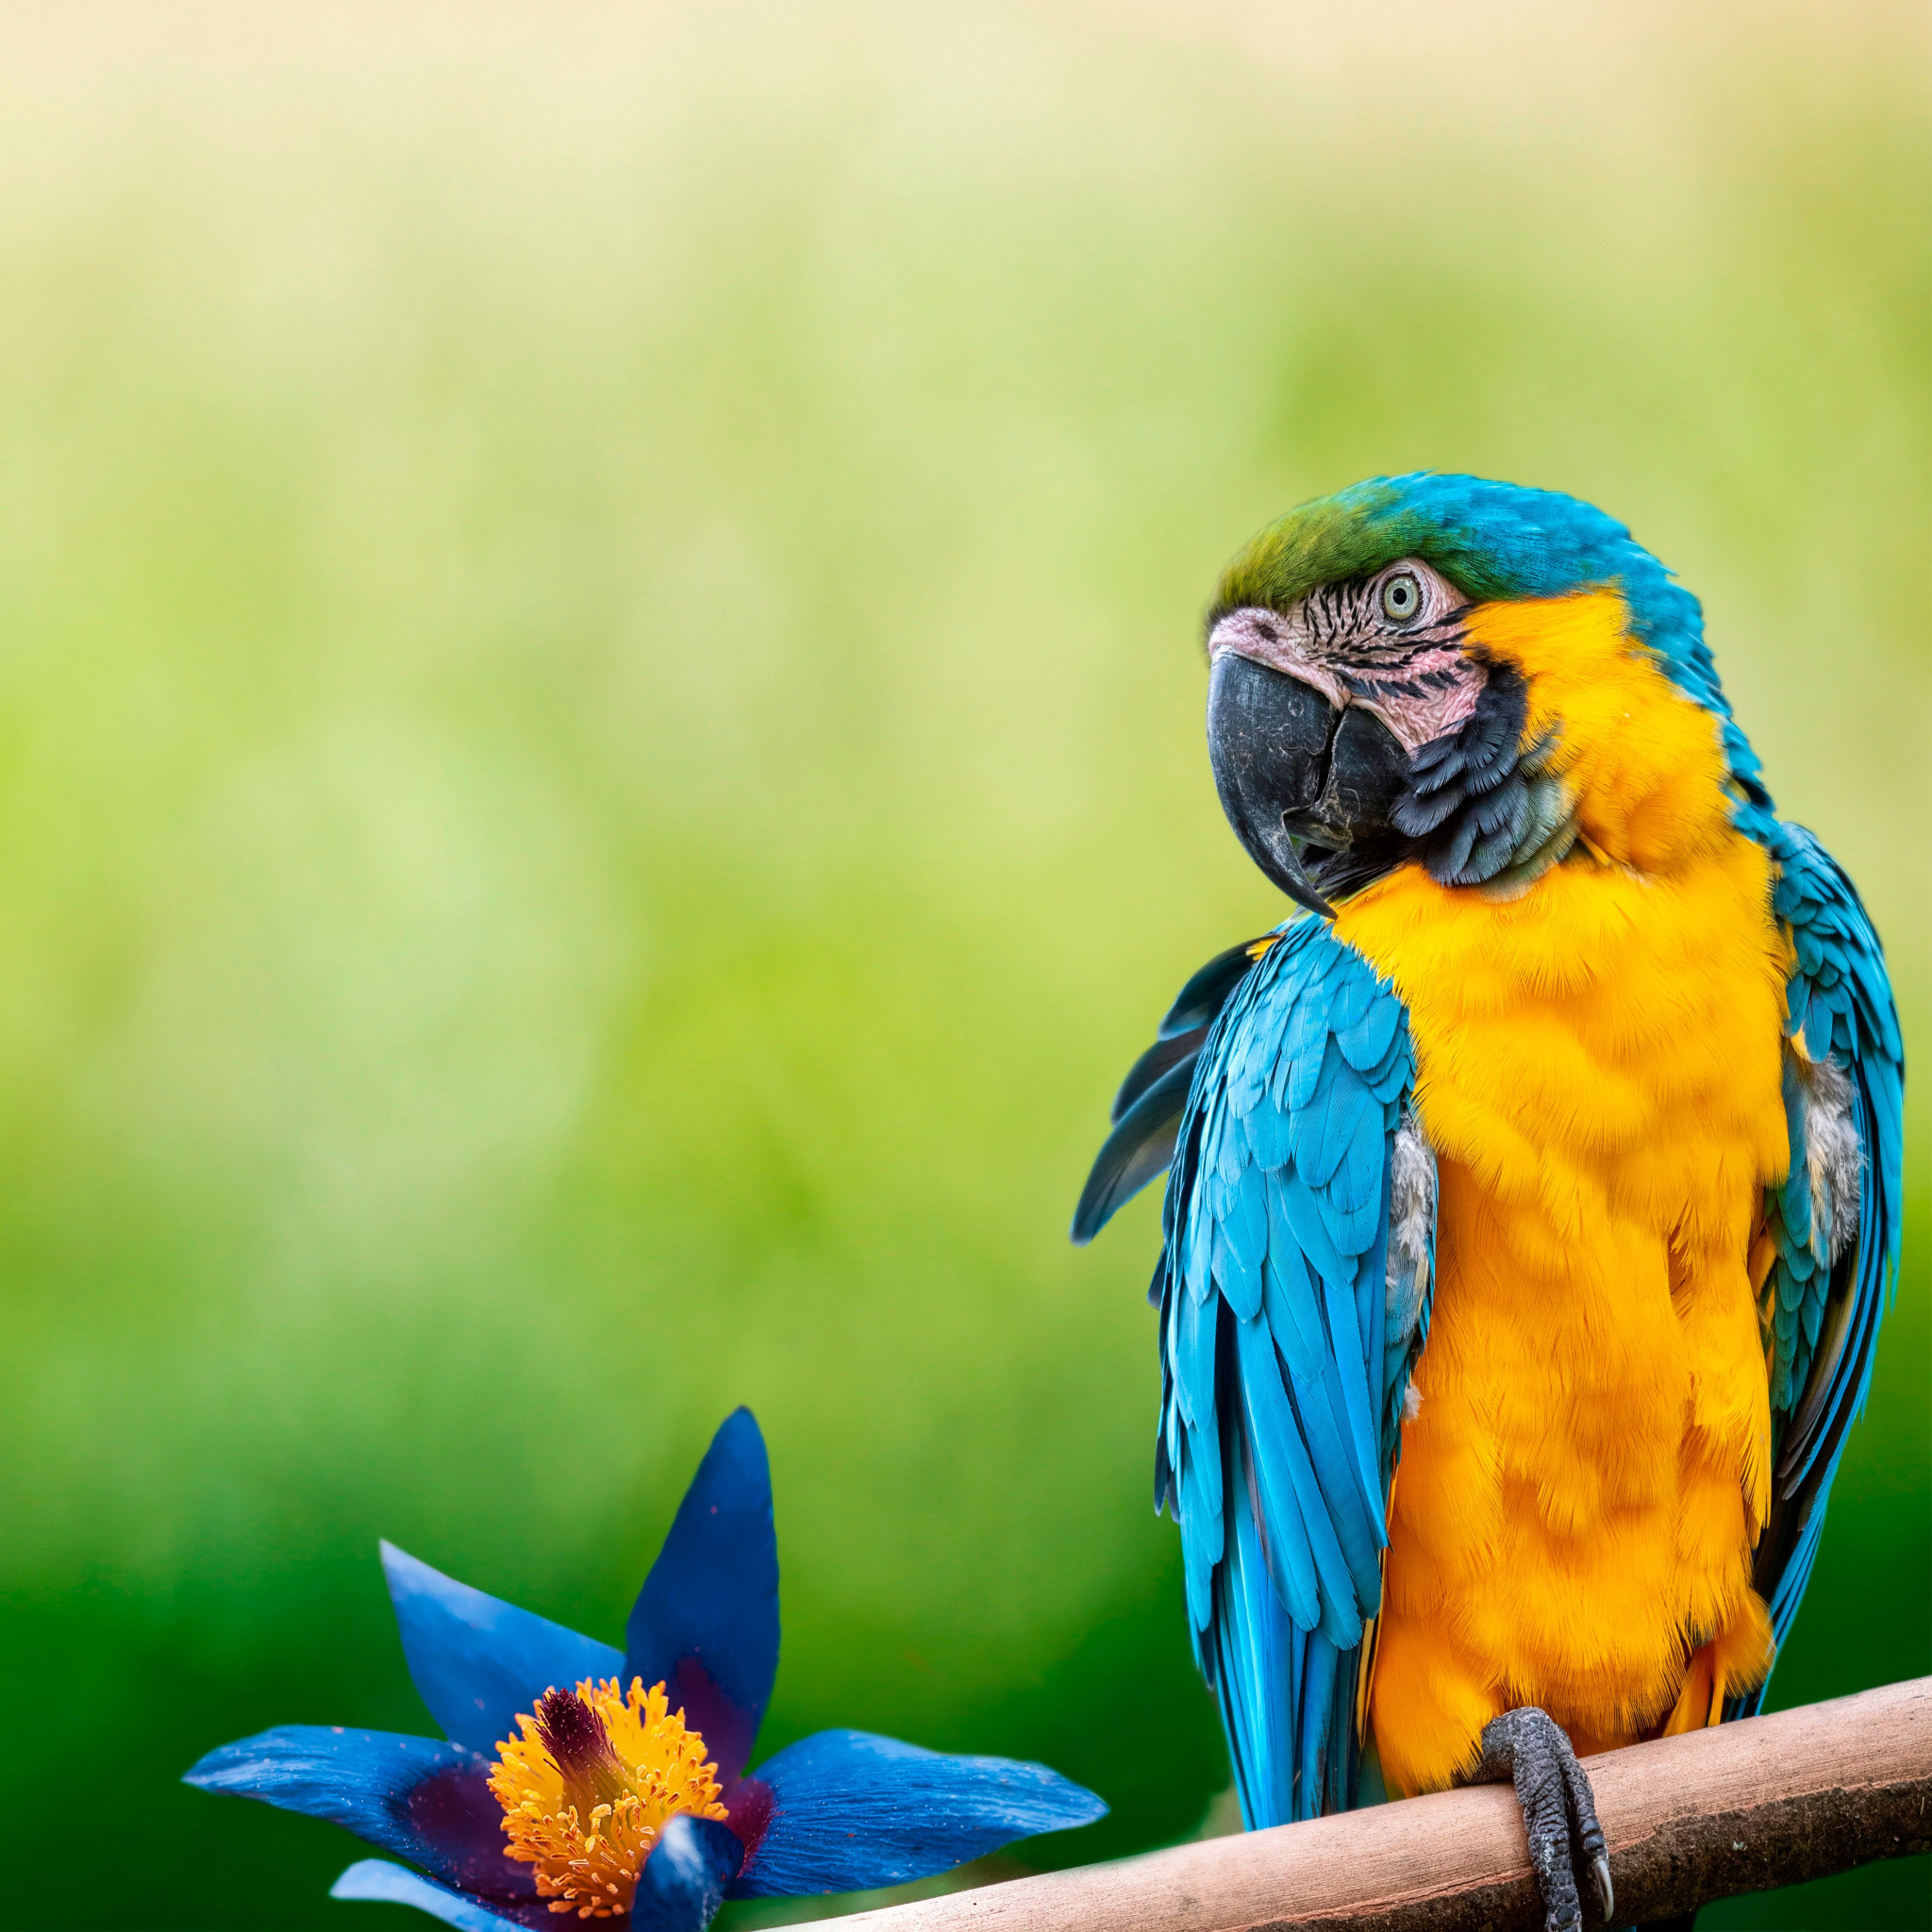 Beautiful Macaw parrot wallpaper 2048x2048